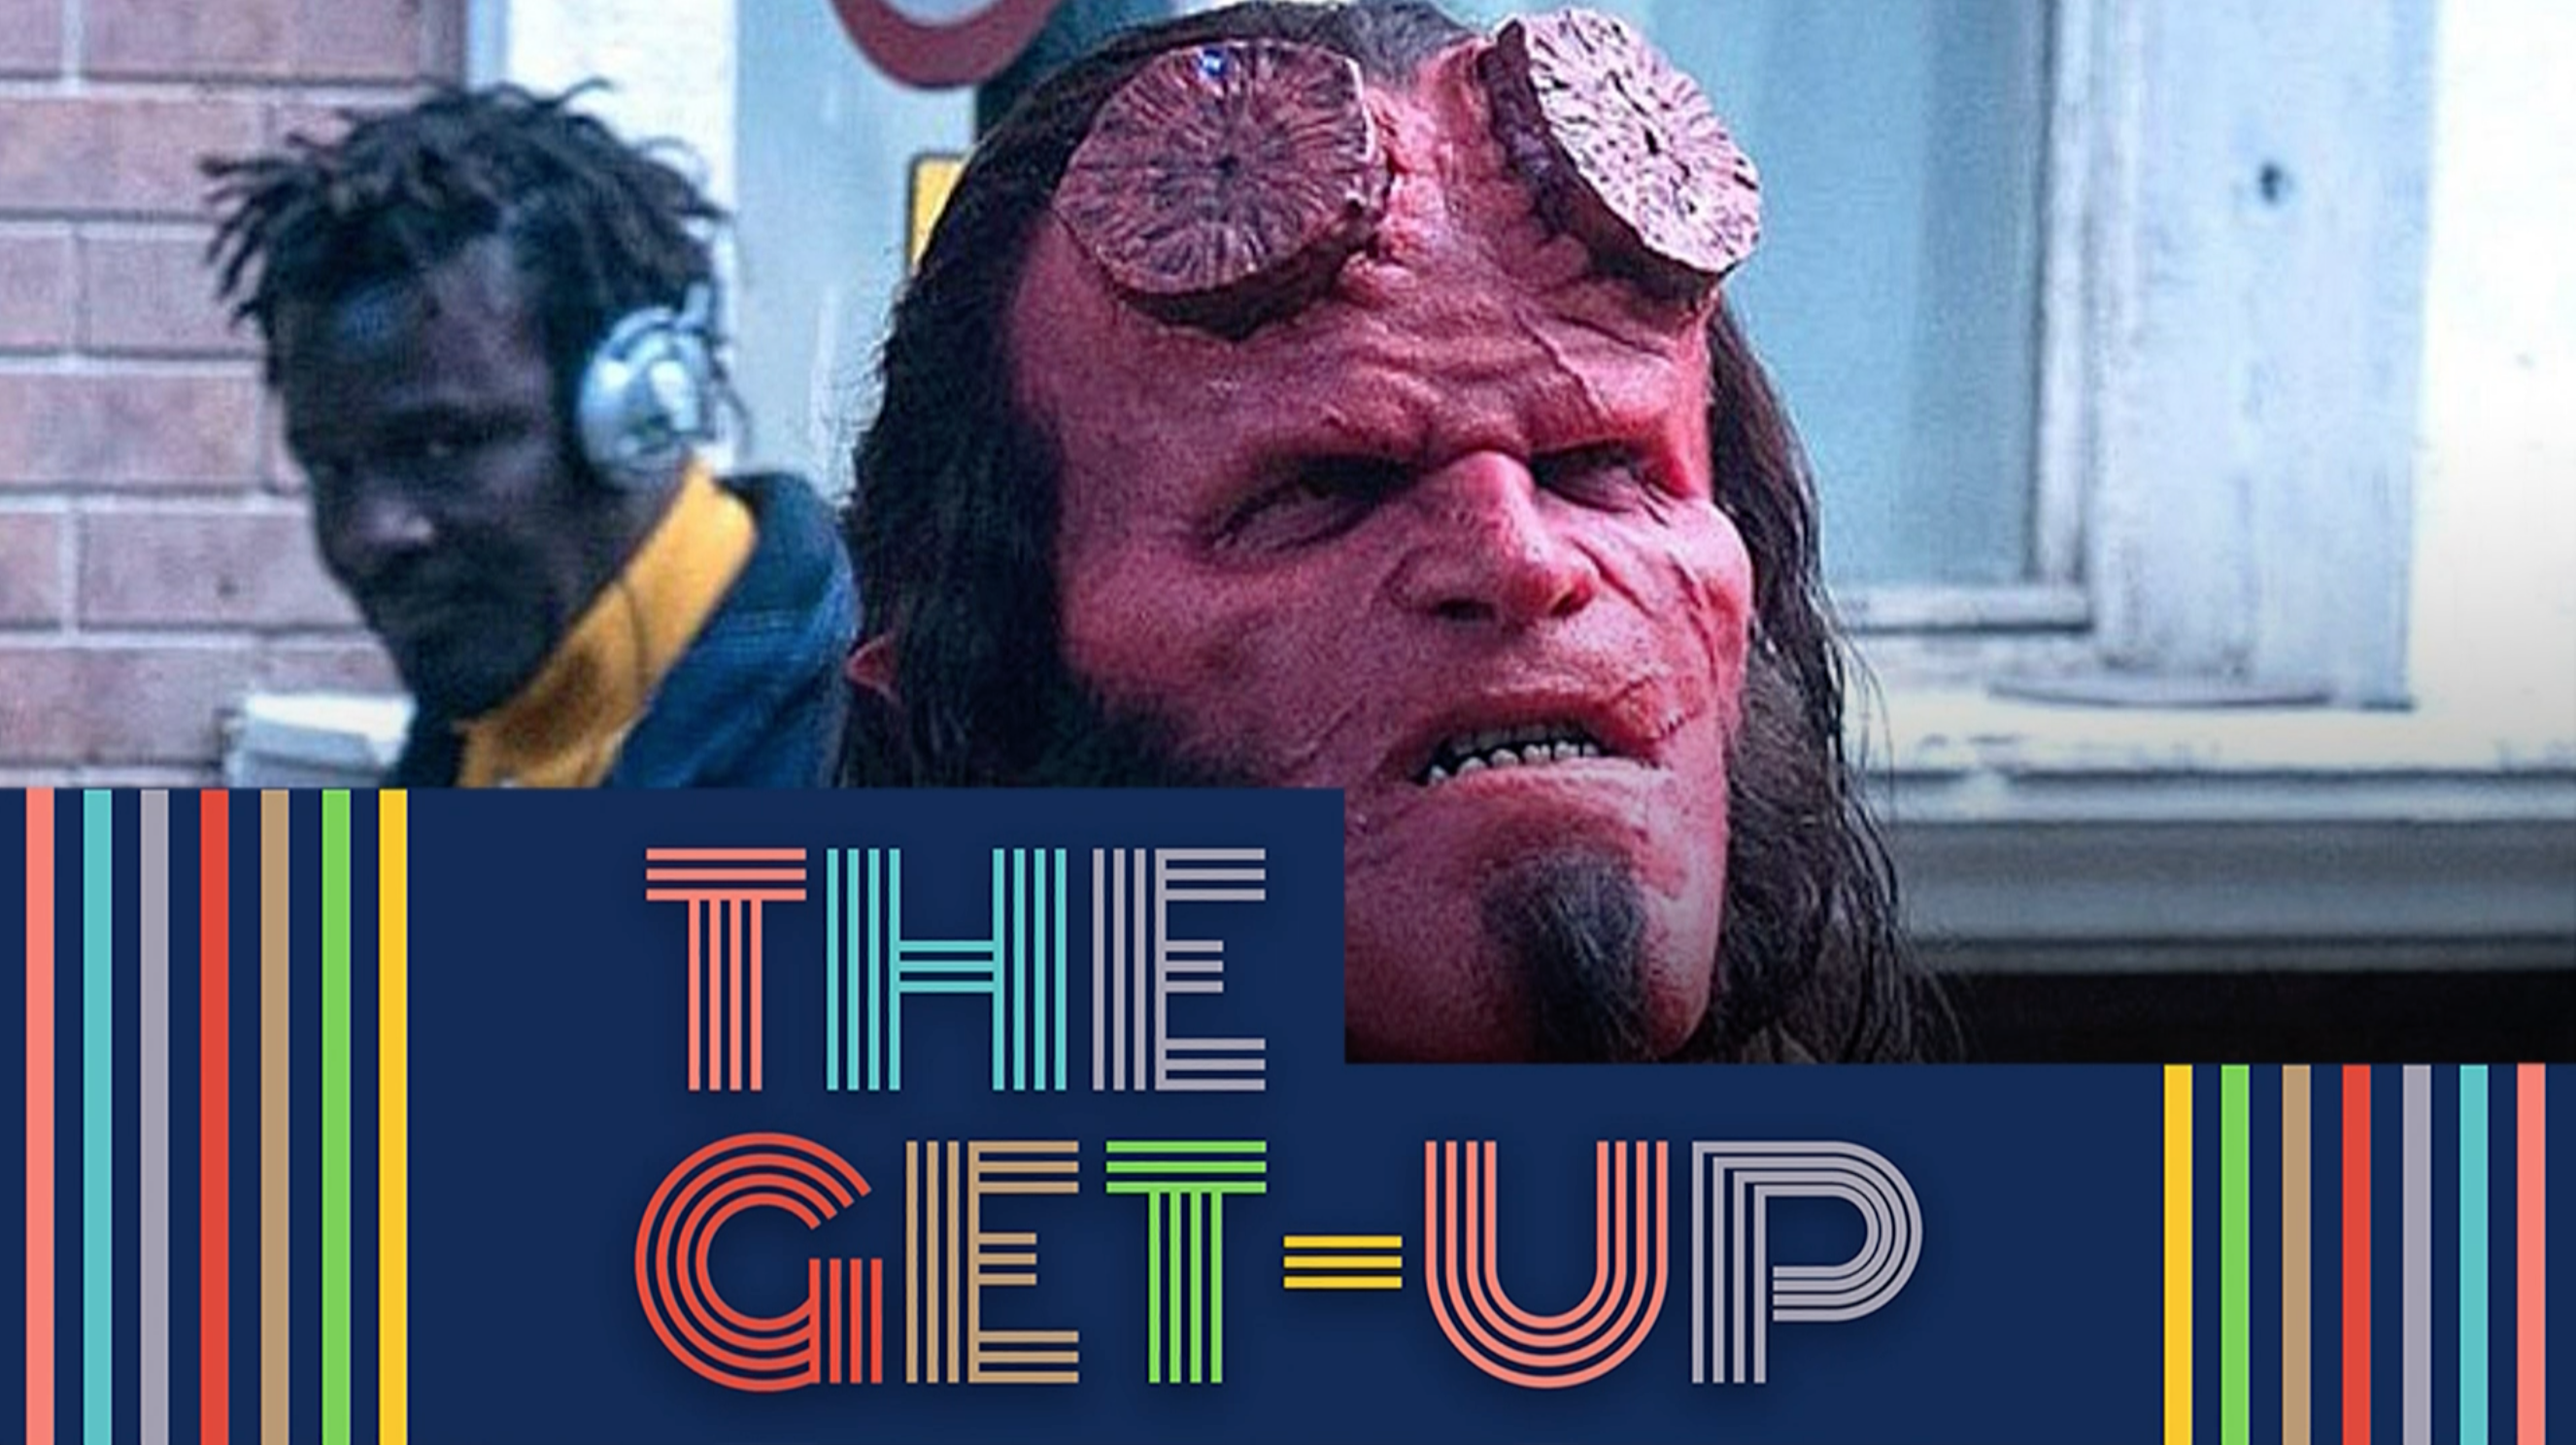 The Get Up - March 1, 2019 screen capture